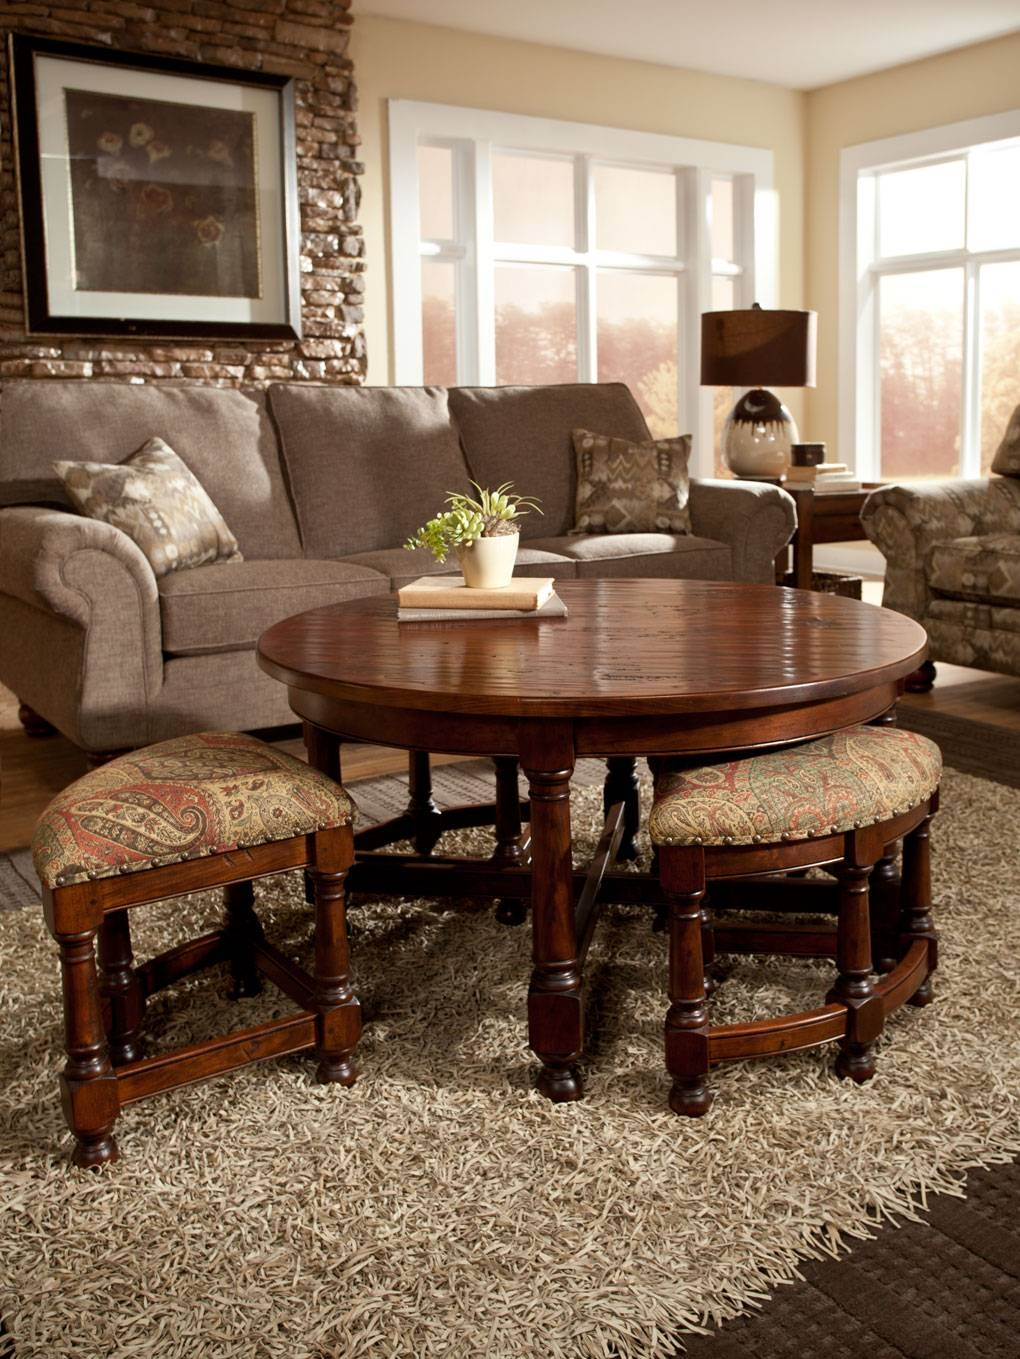 Mackenzie Dow Pertaining To Coffee Tables With Nesting Stools (View 23 of 30)